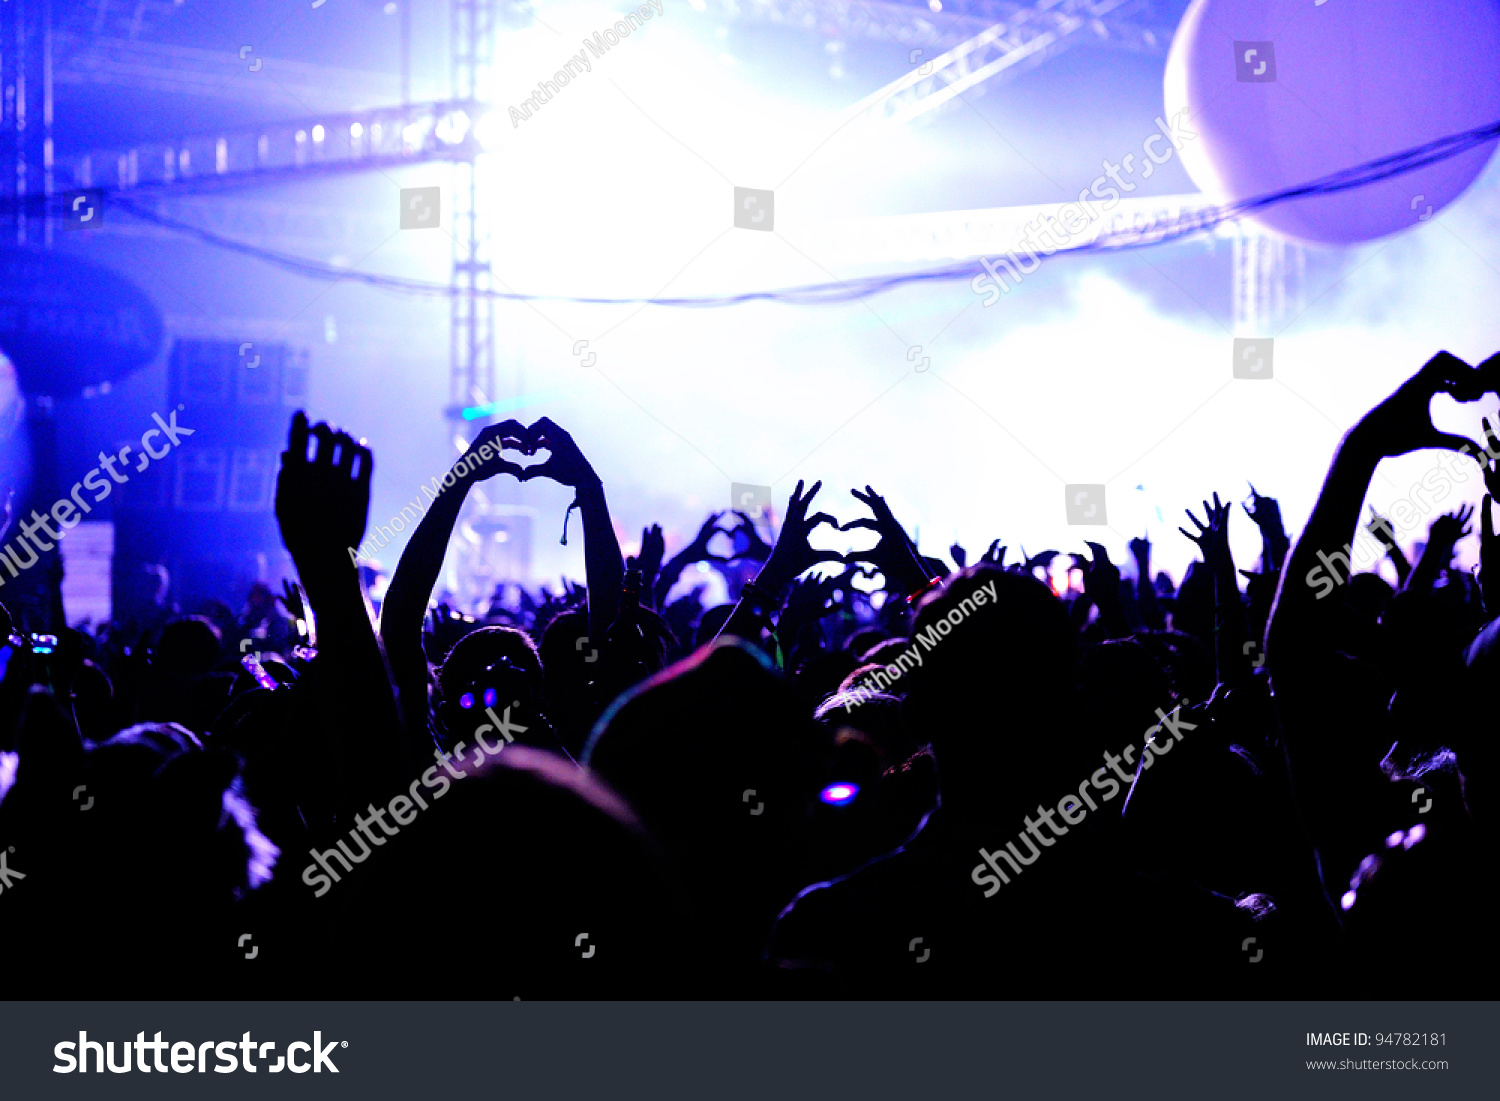 Love Heart Hands In Air At Festival - Crowd #94782181